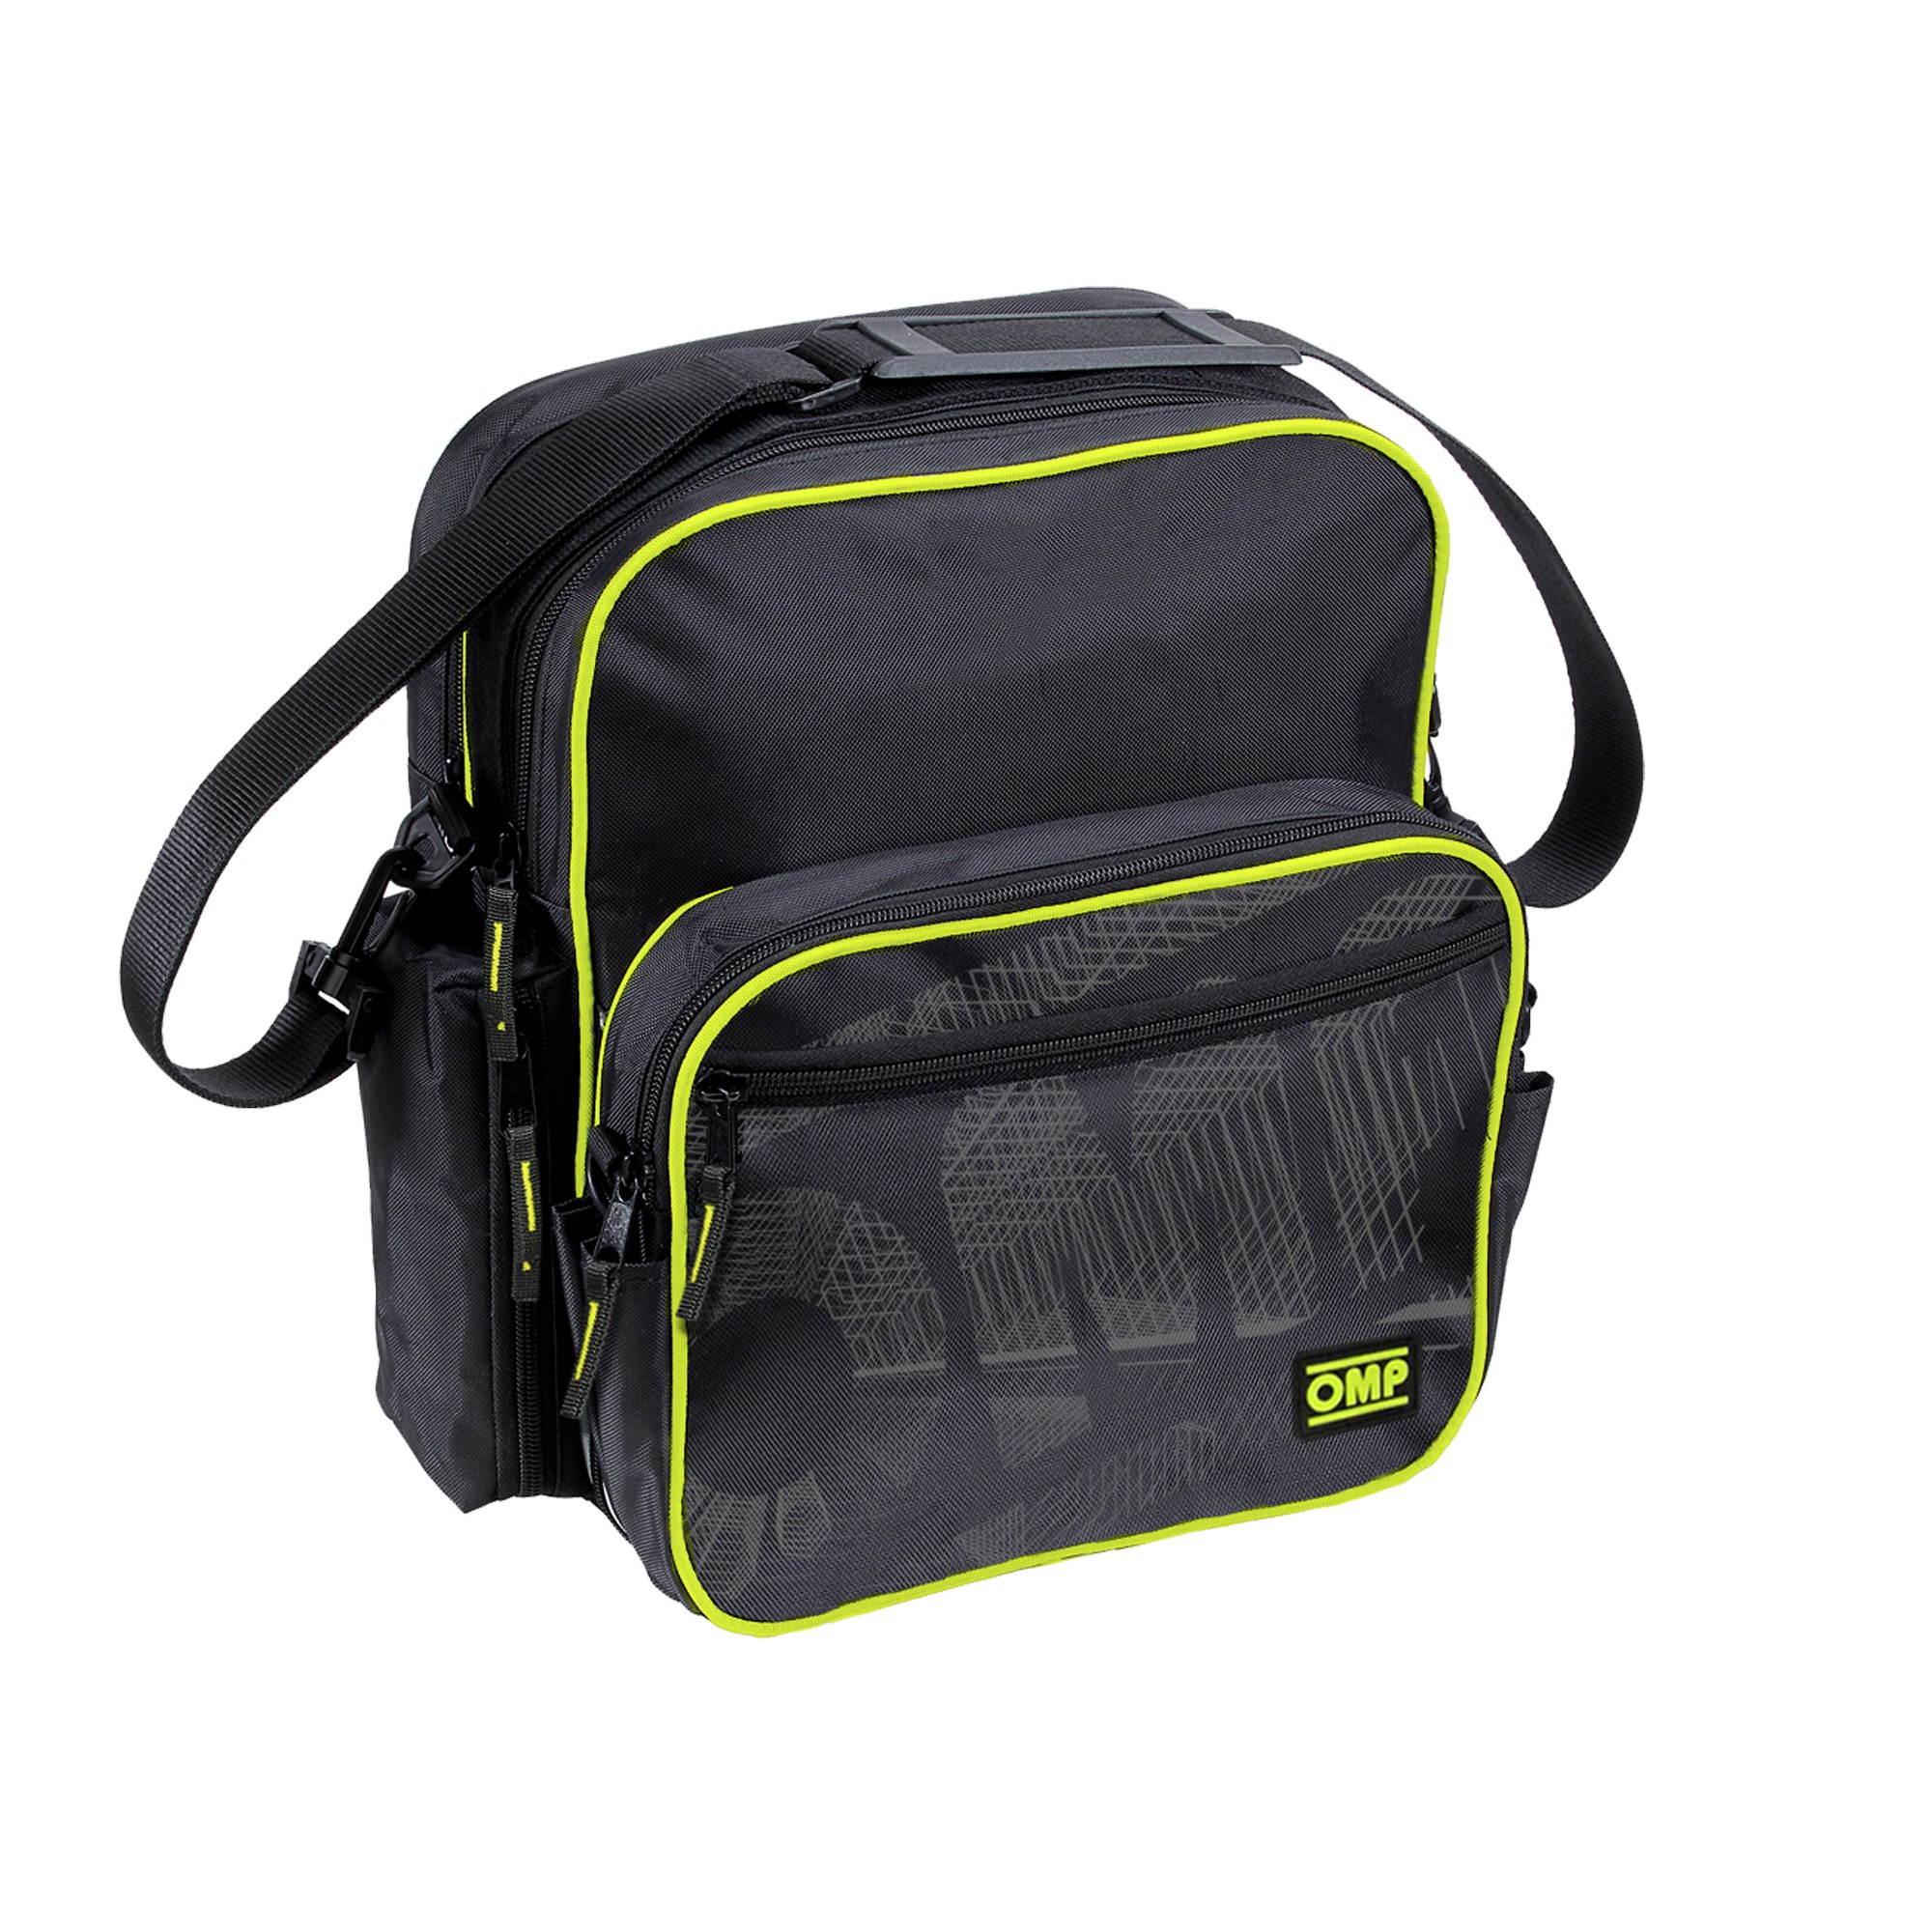 CO-DRIVER PLUS Bag